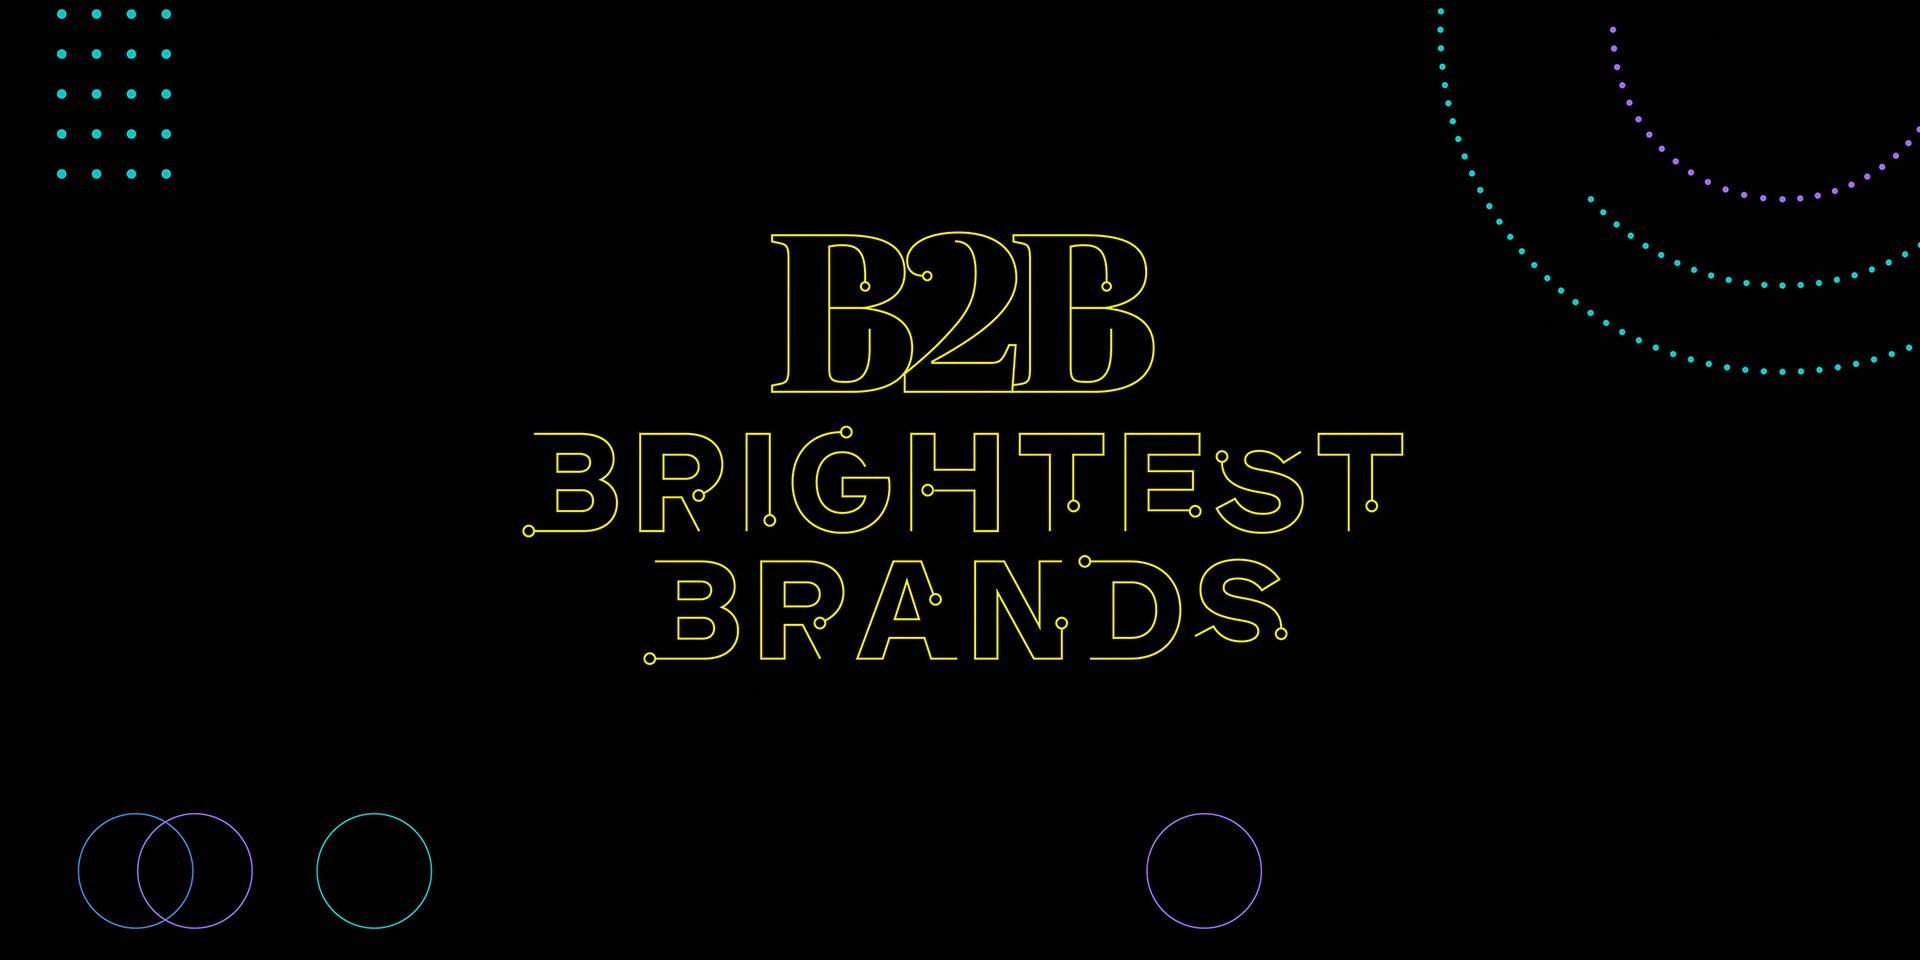 How brightly are professional services brands shining?